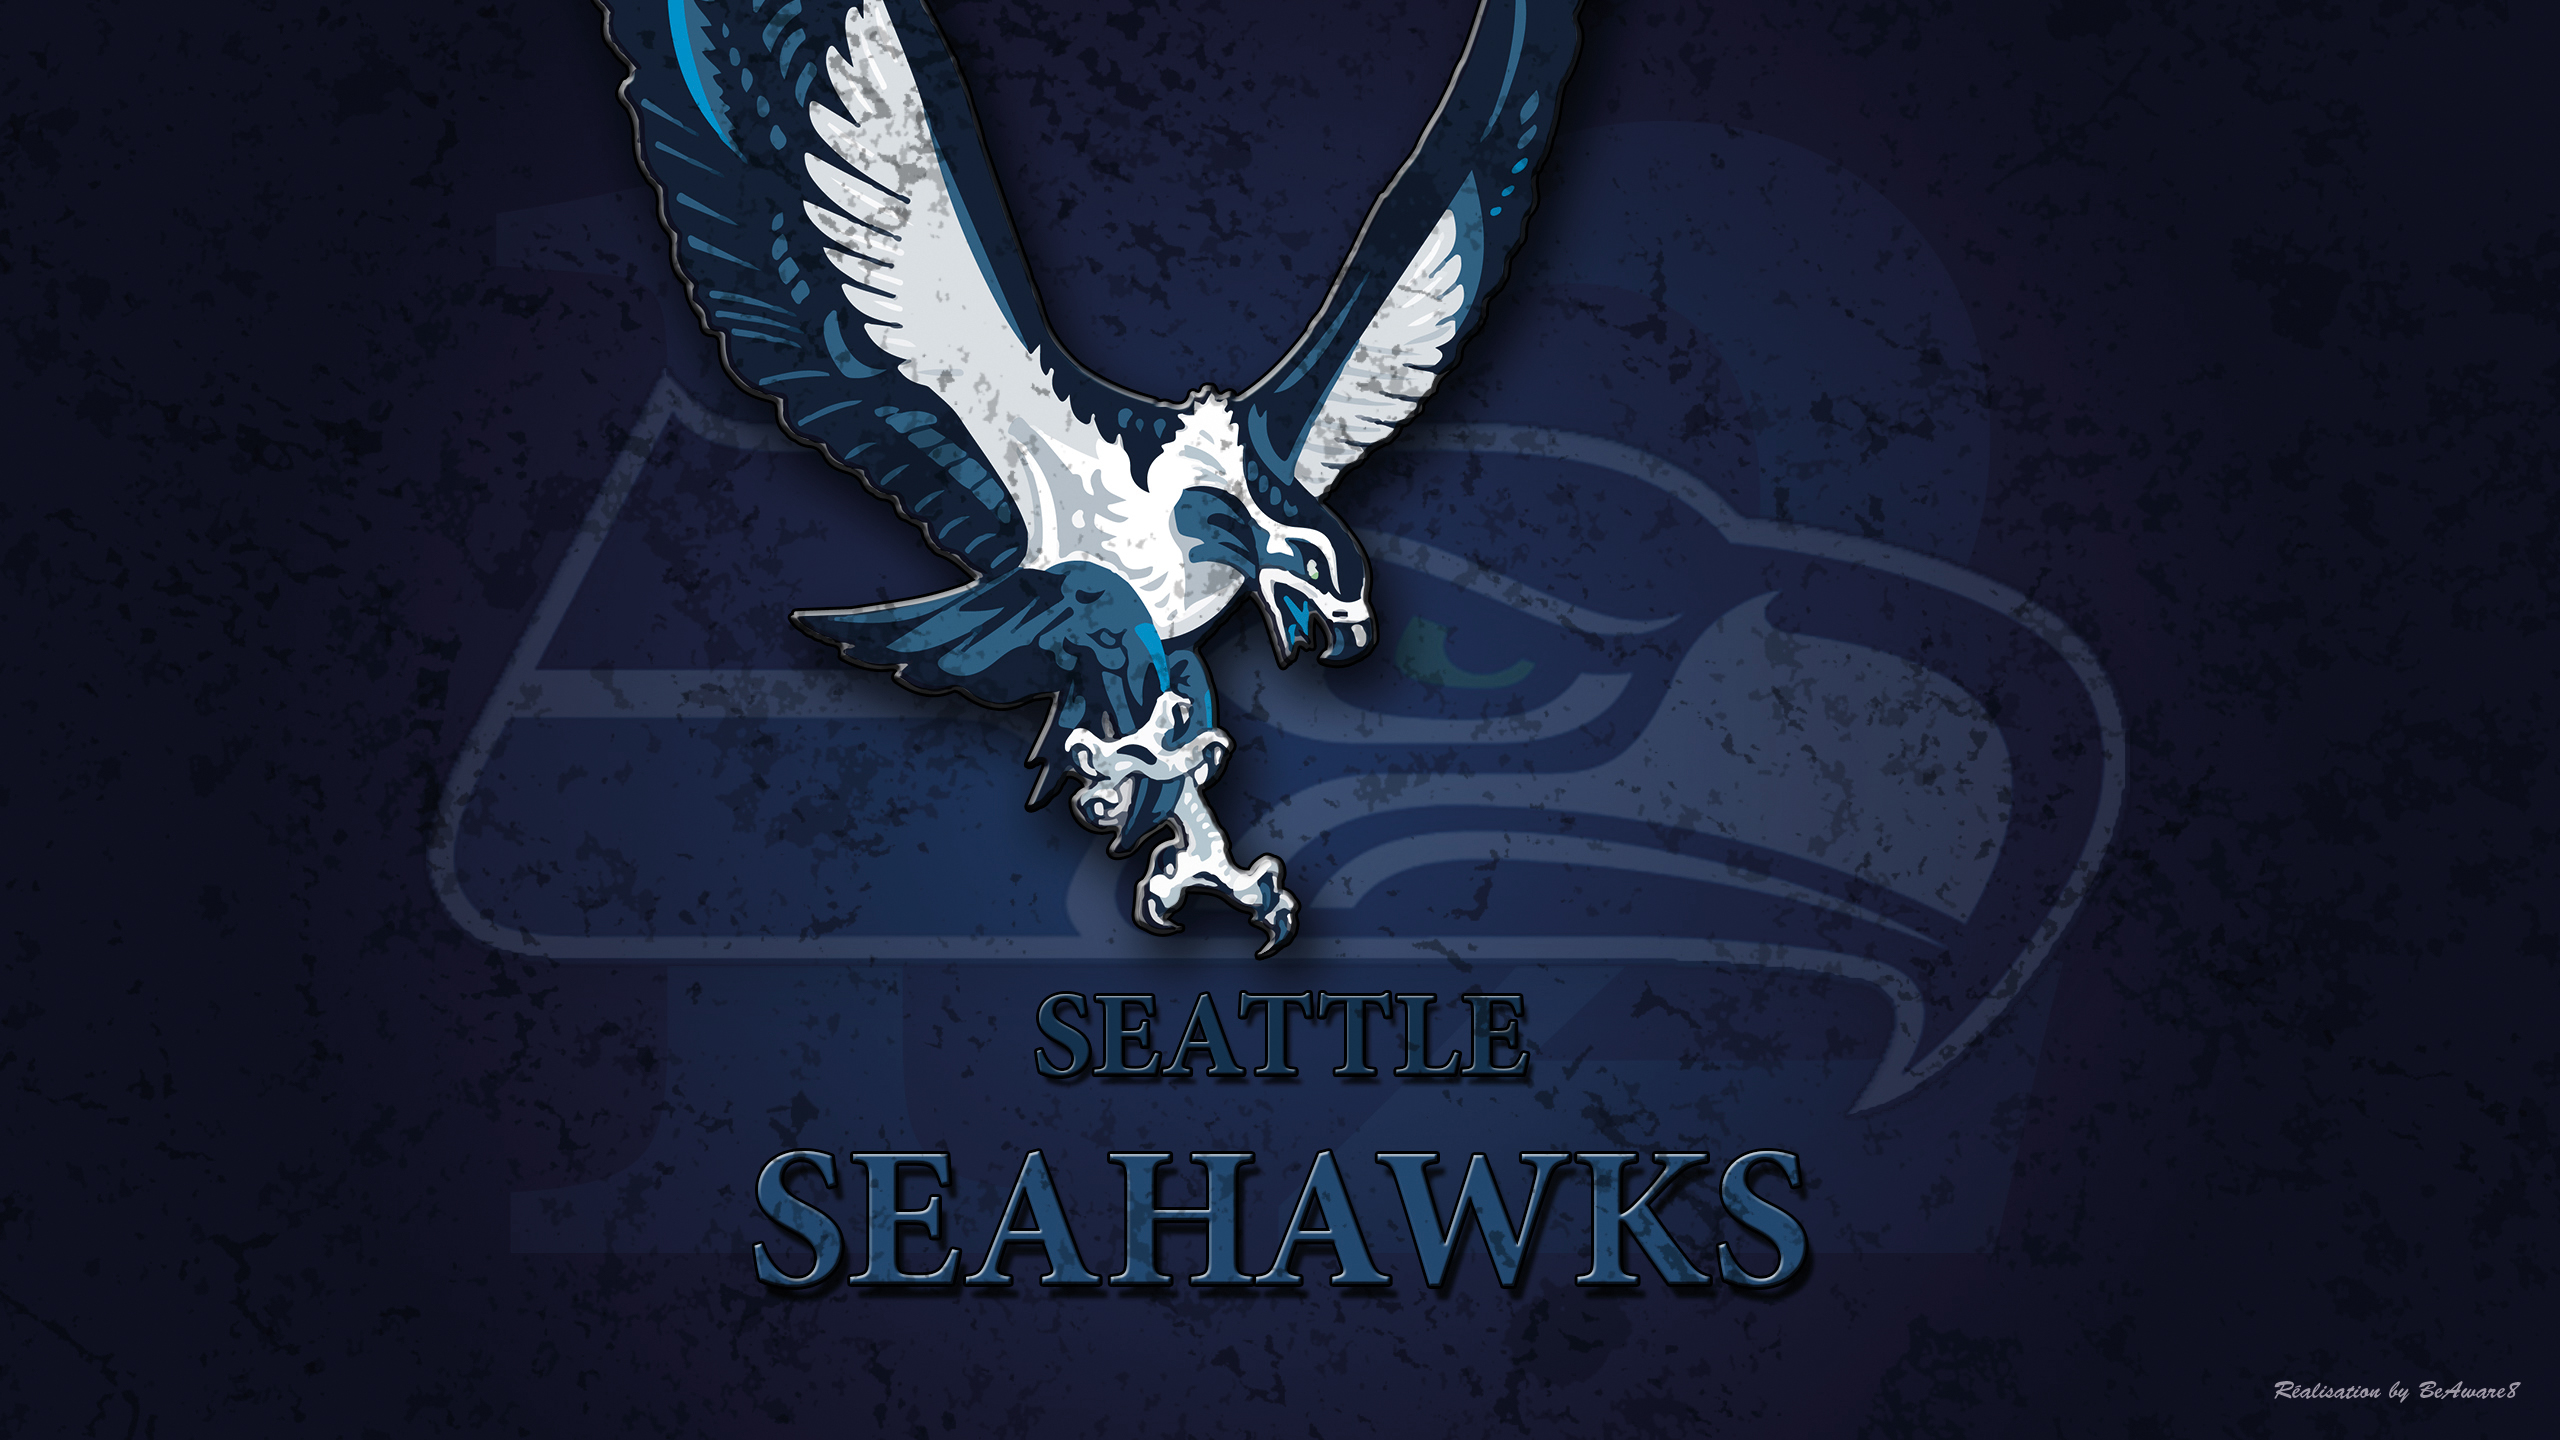 Seattle seahawks by beaware8 on deviantart seattle seahawks by beaware8 seattle seahawks by beaware8 voltagebd Image collections